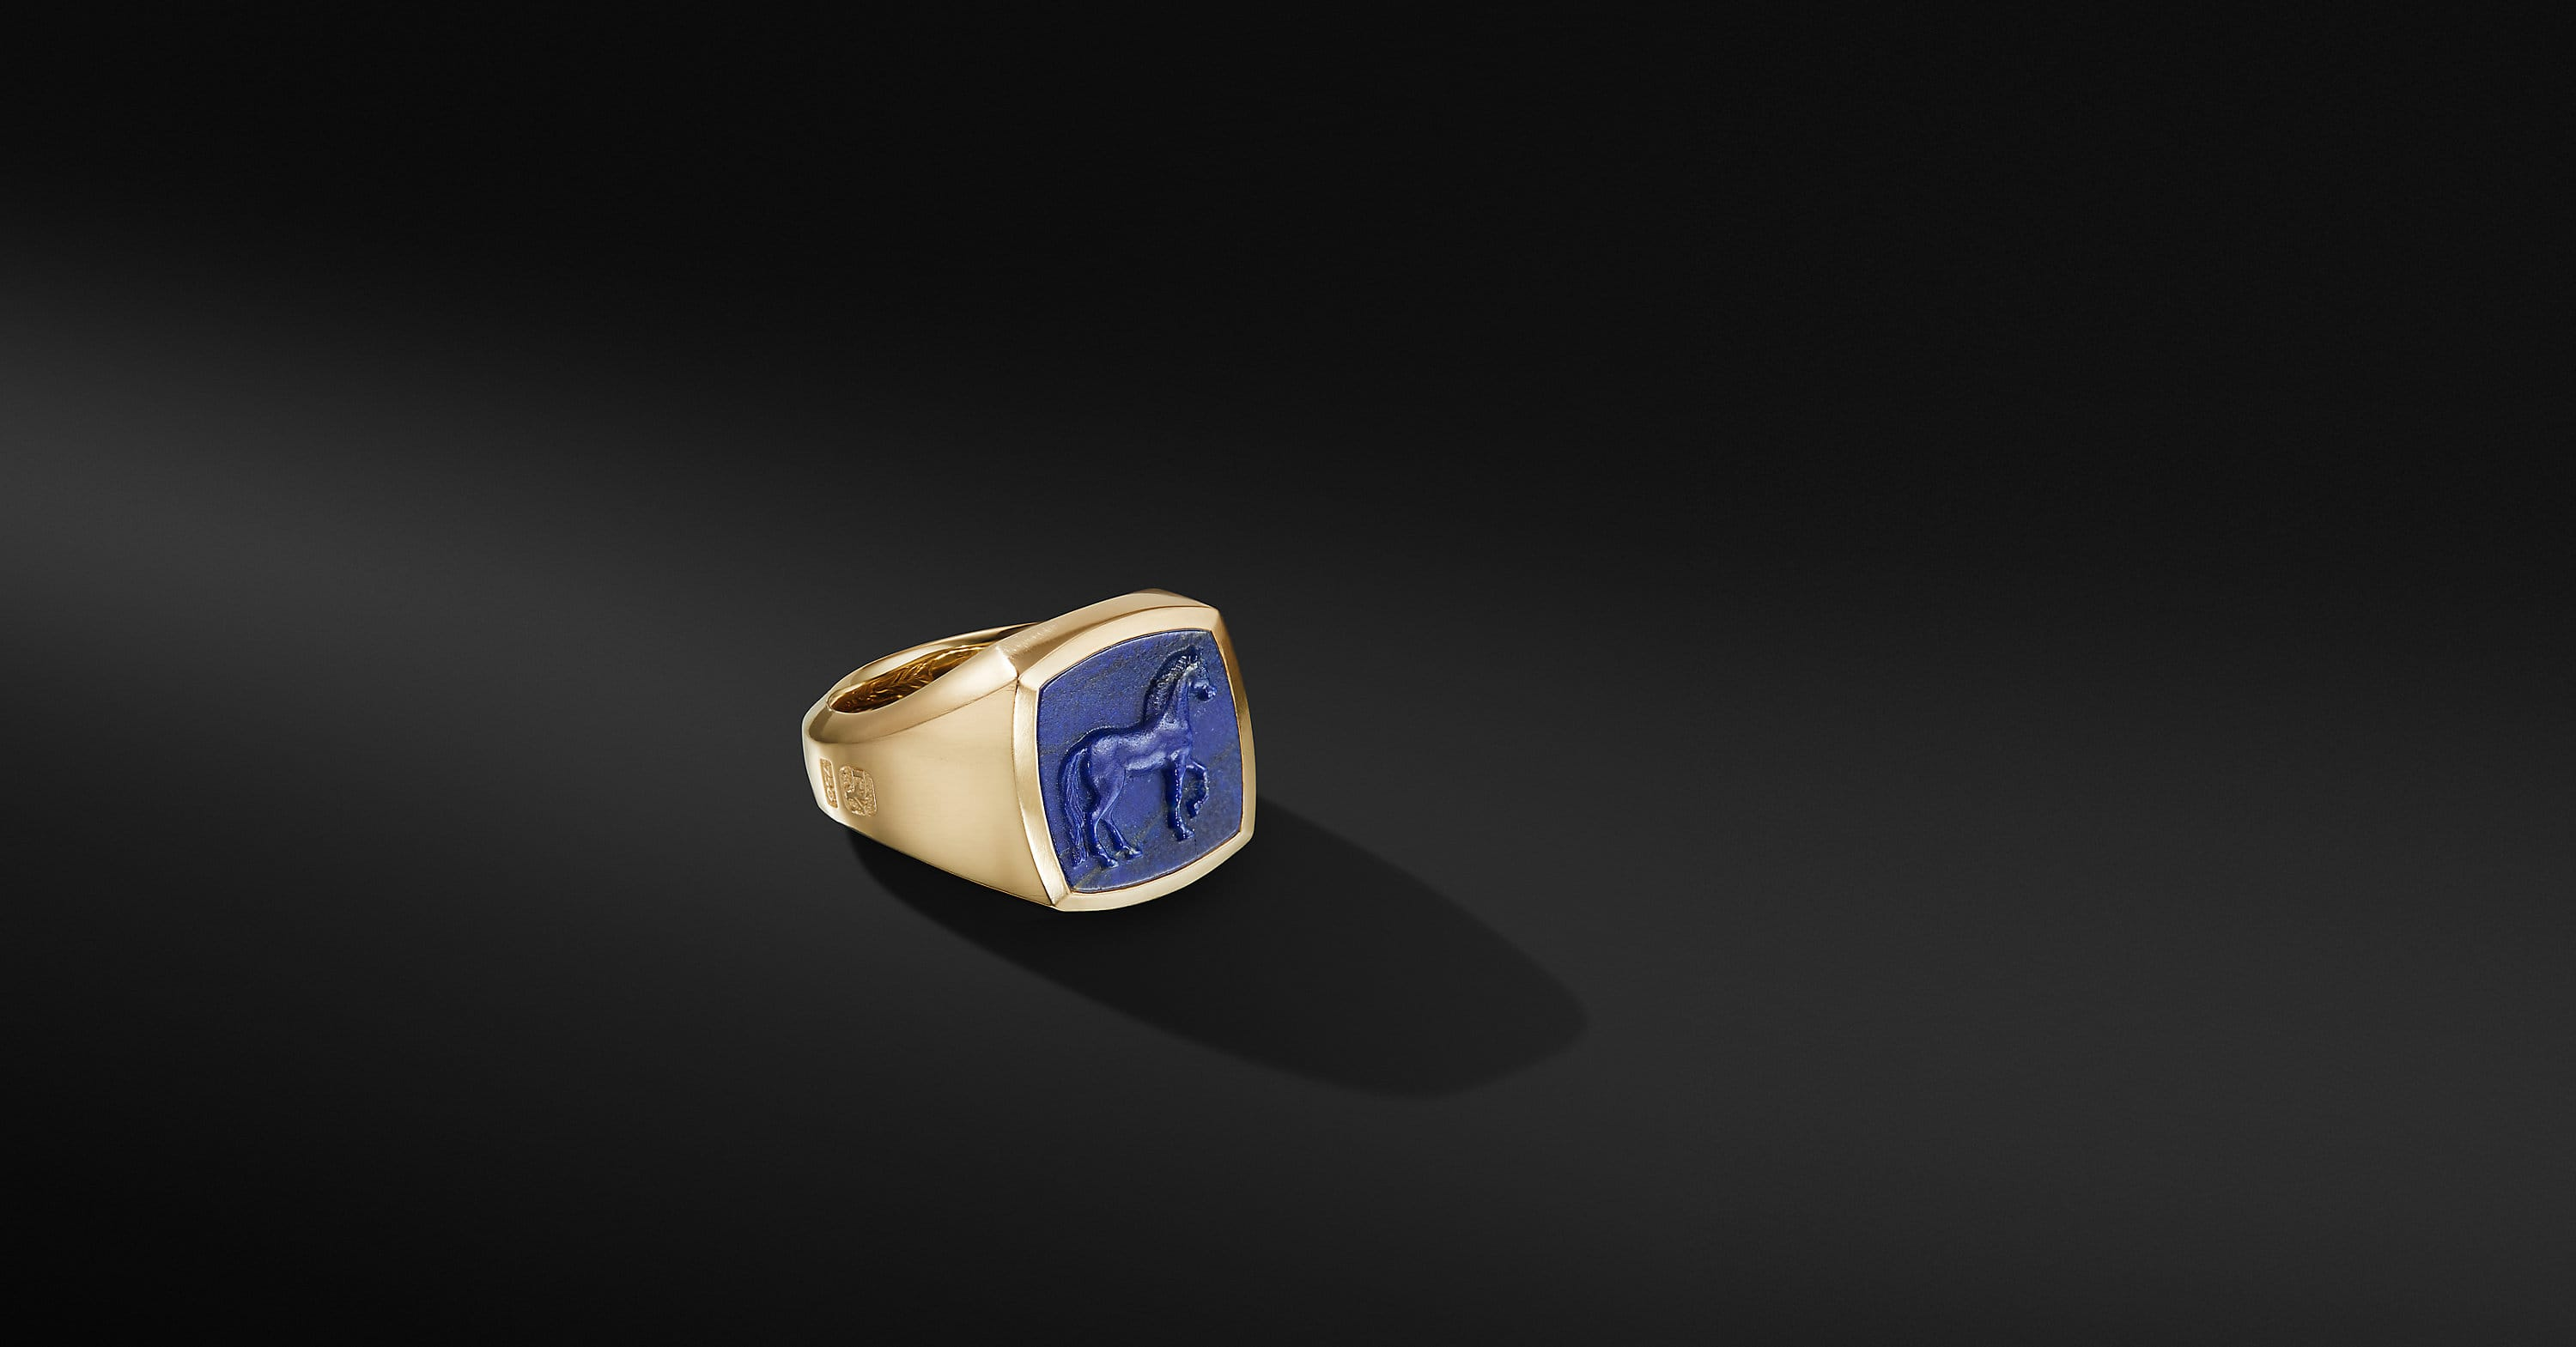 Petrvs Horse Signet Ring in 18K Yellow Gold